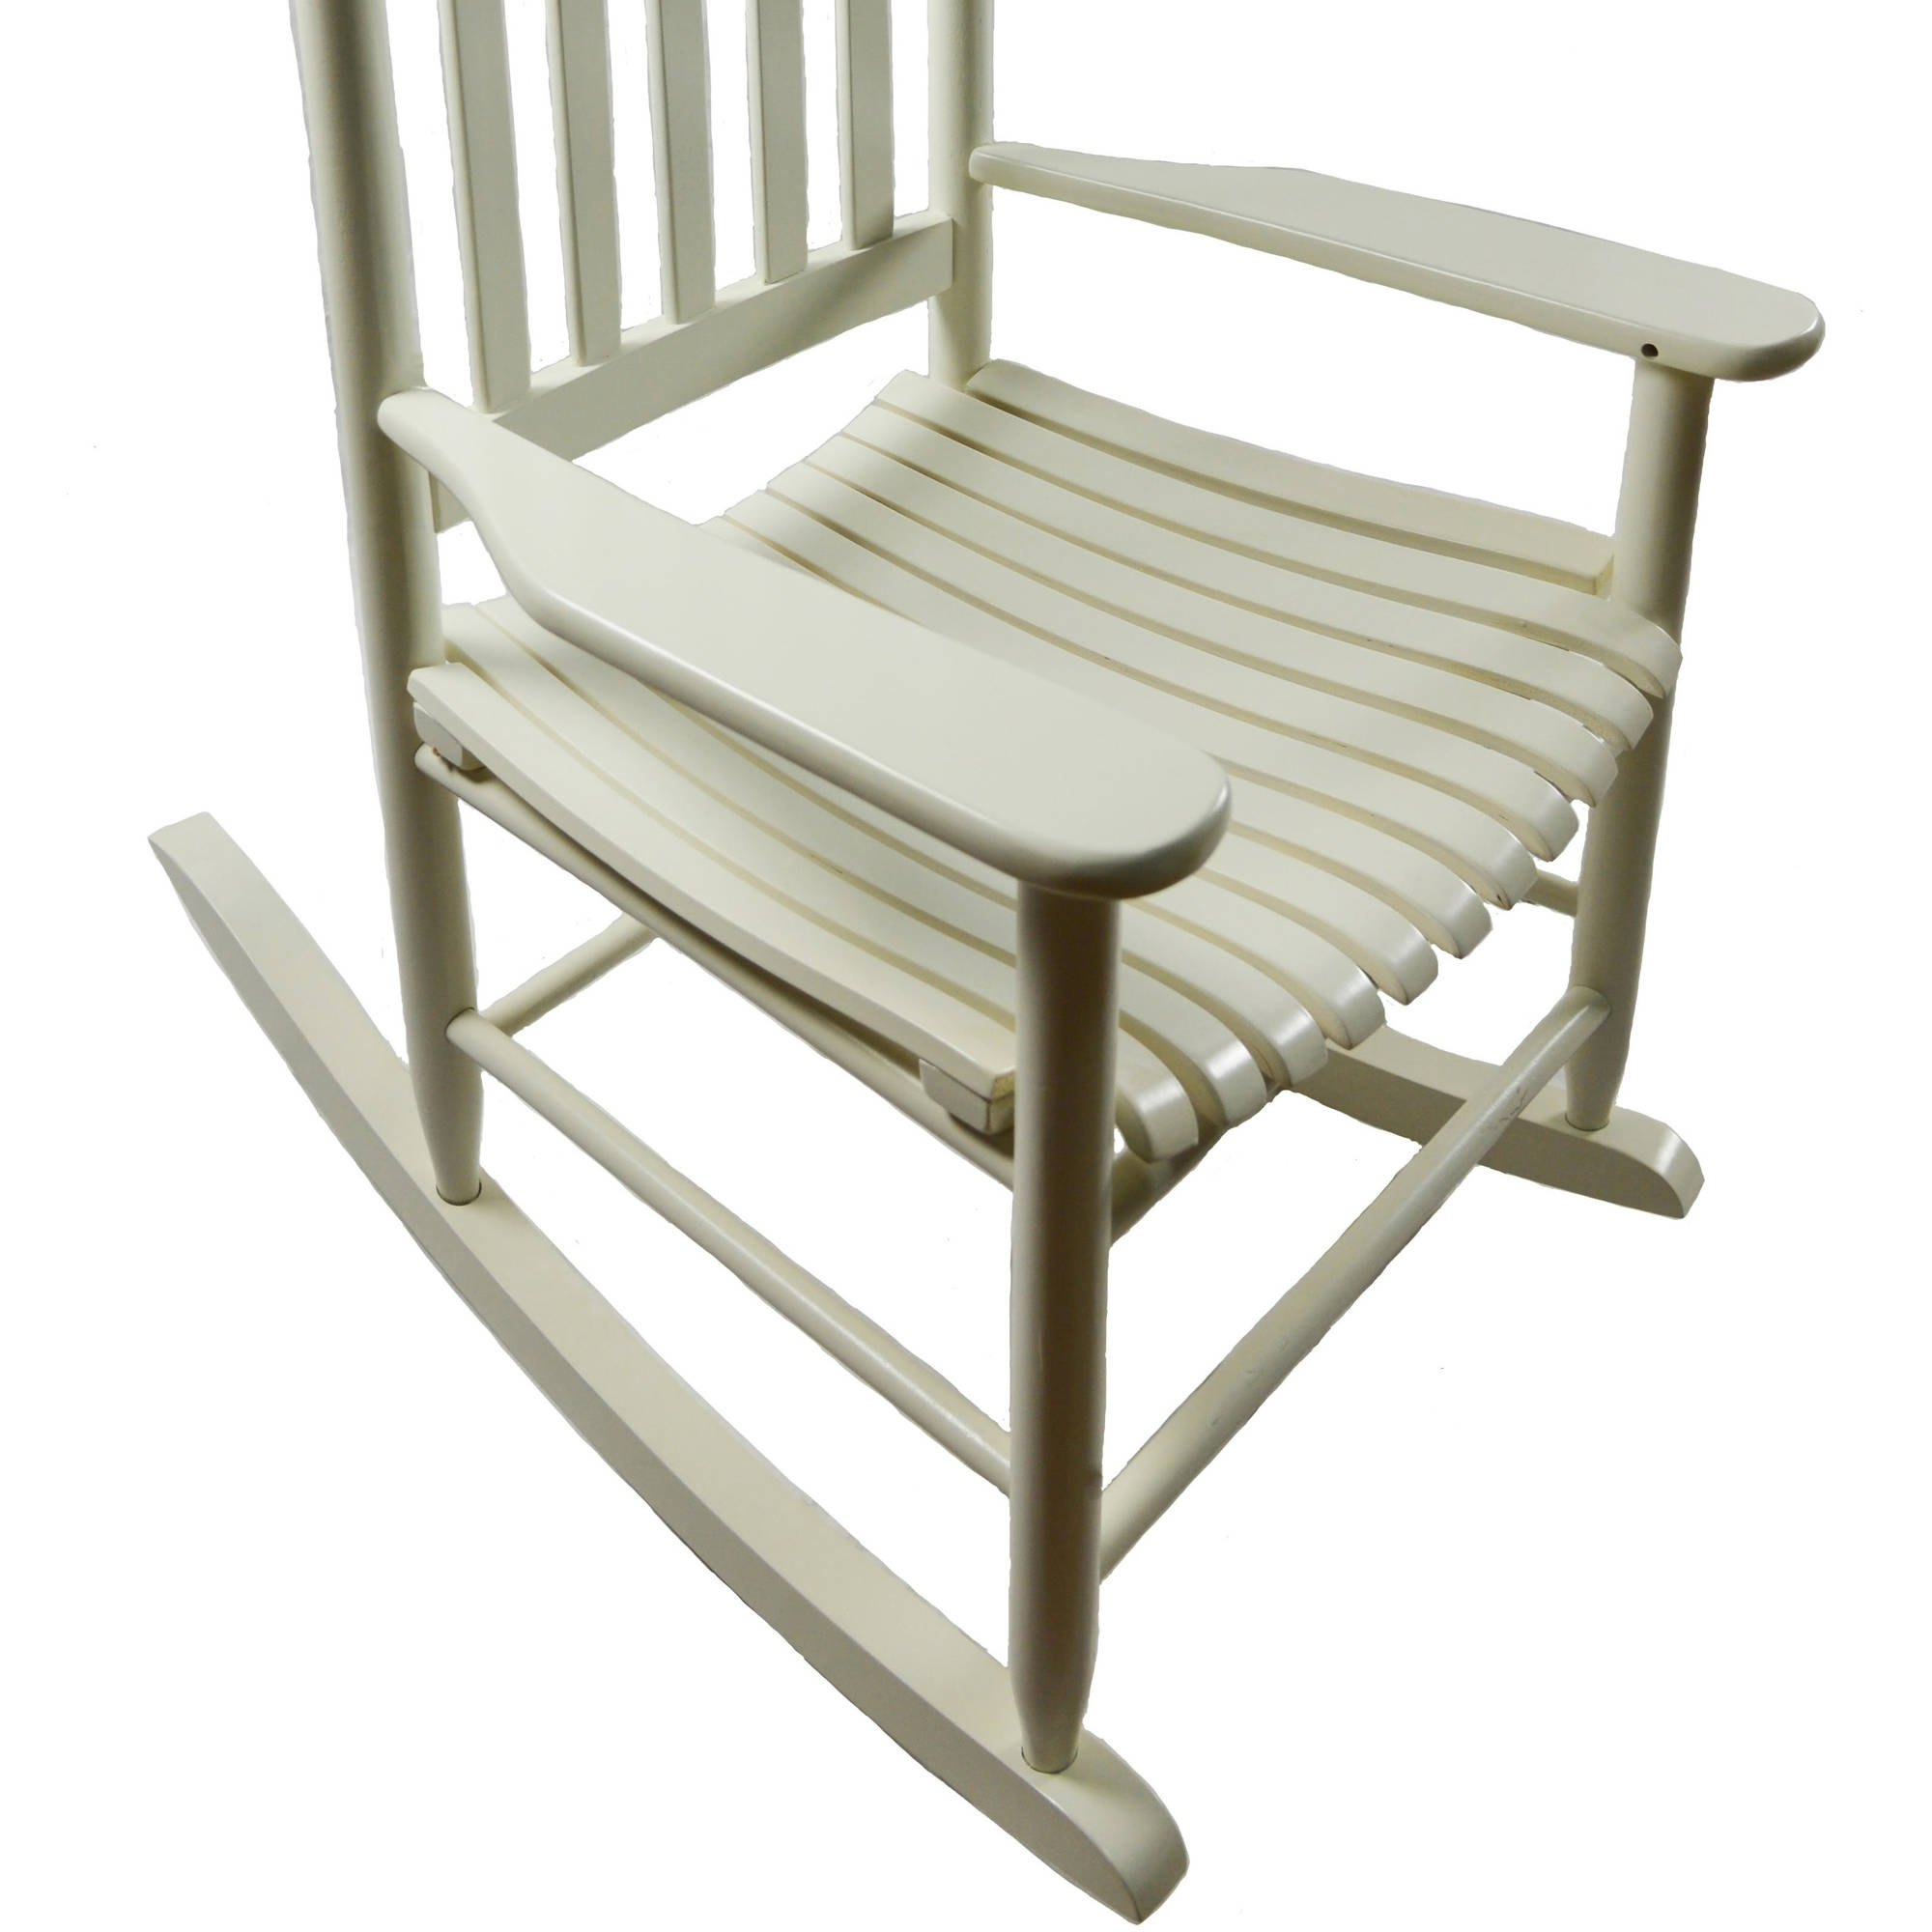 Inspiration about Mainstays Outdoor Wood Rocking Chair – Walmart With Walmart Rocking Chairs (#2 of 15)